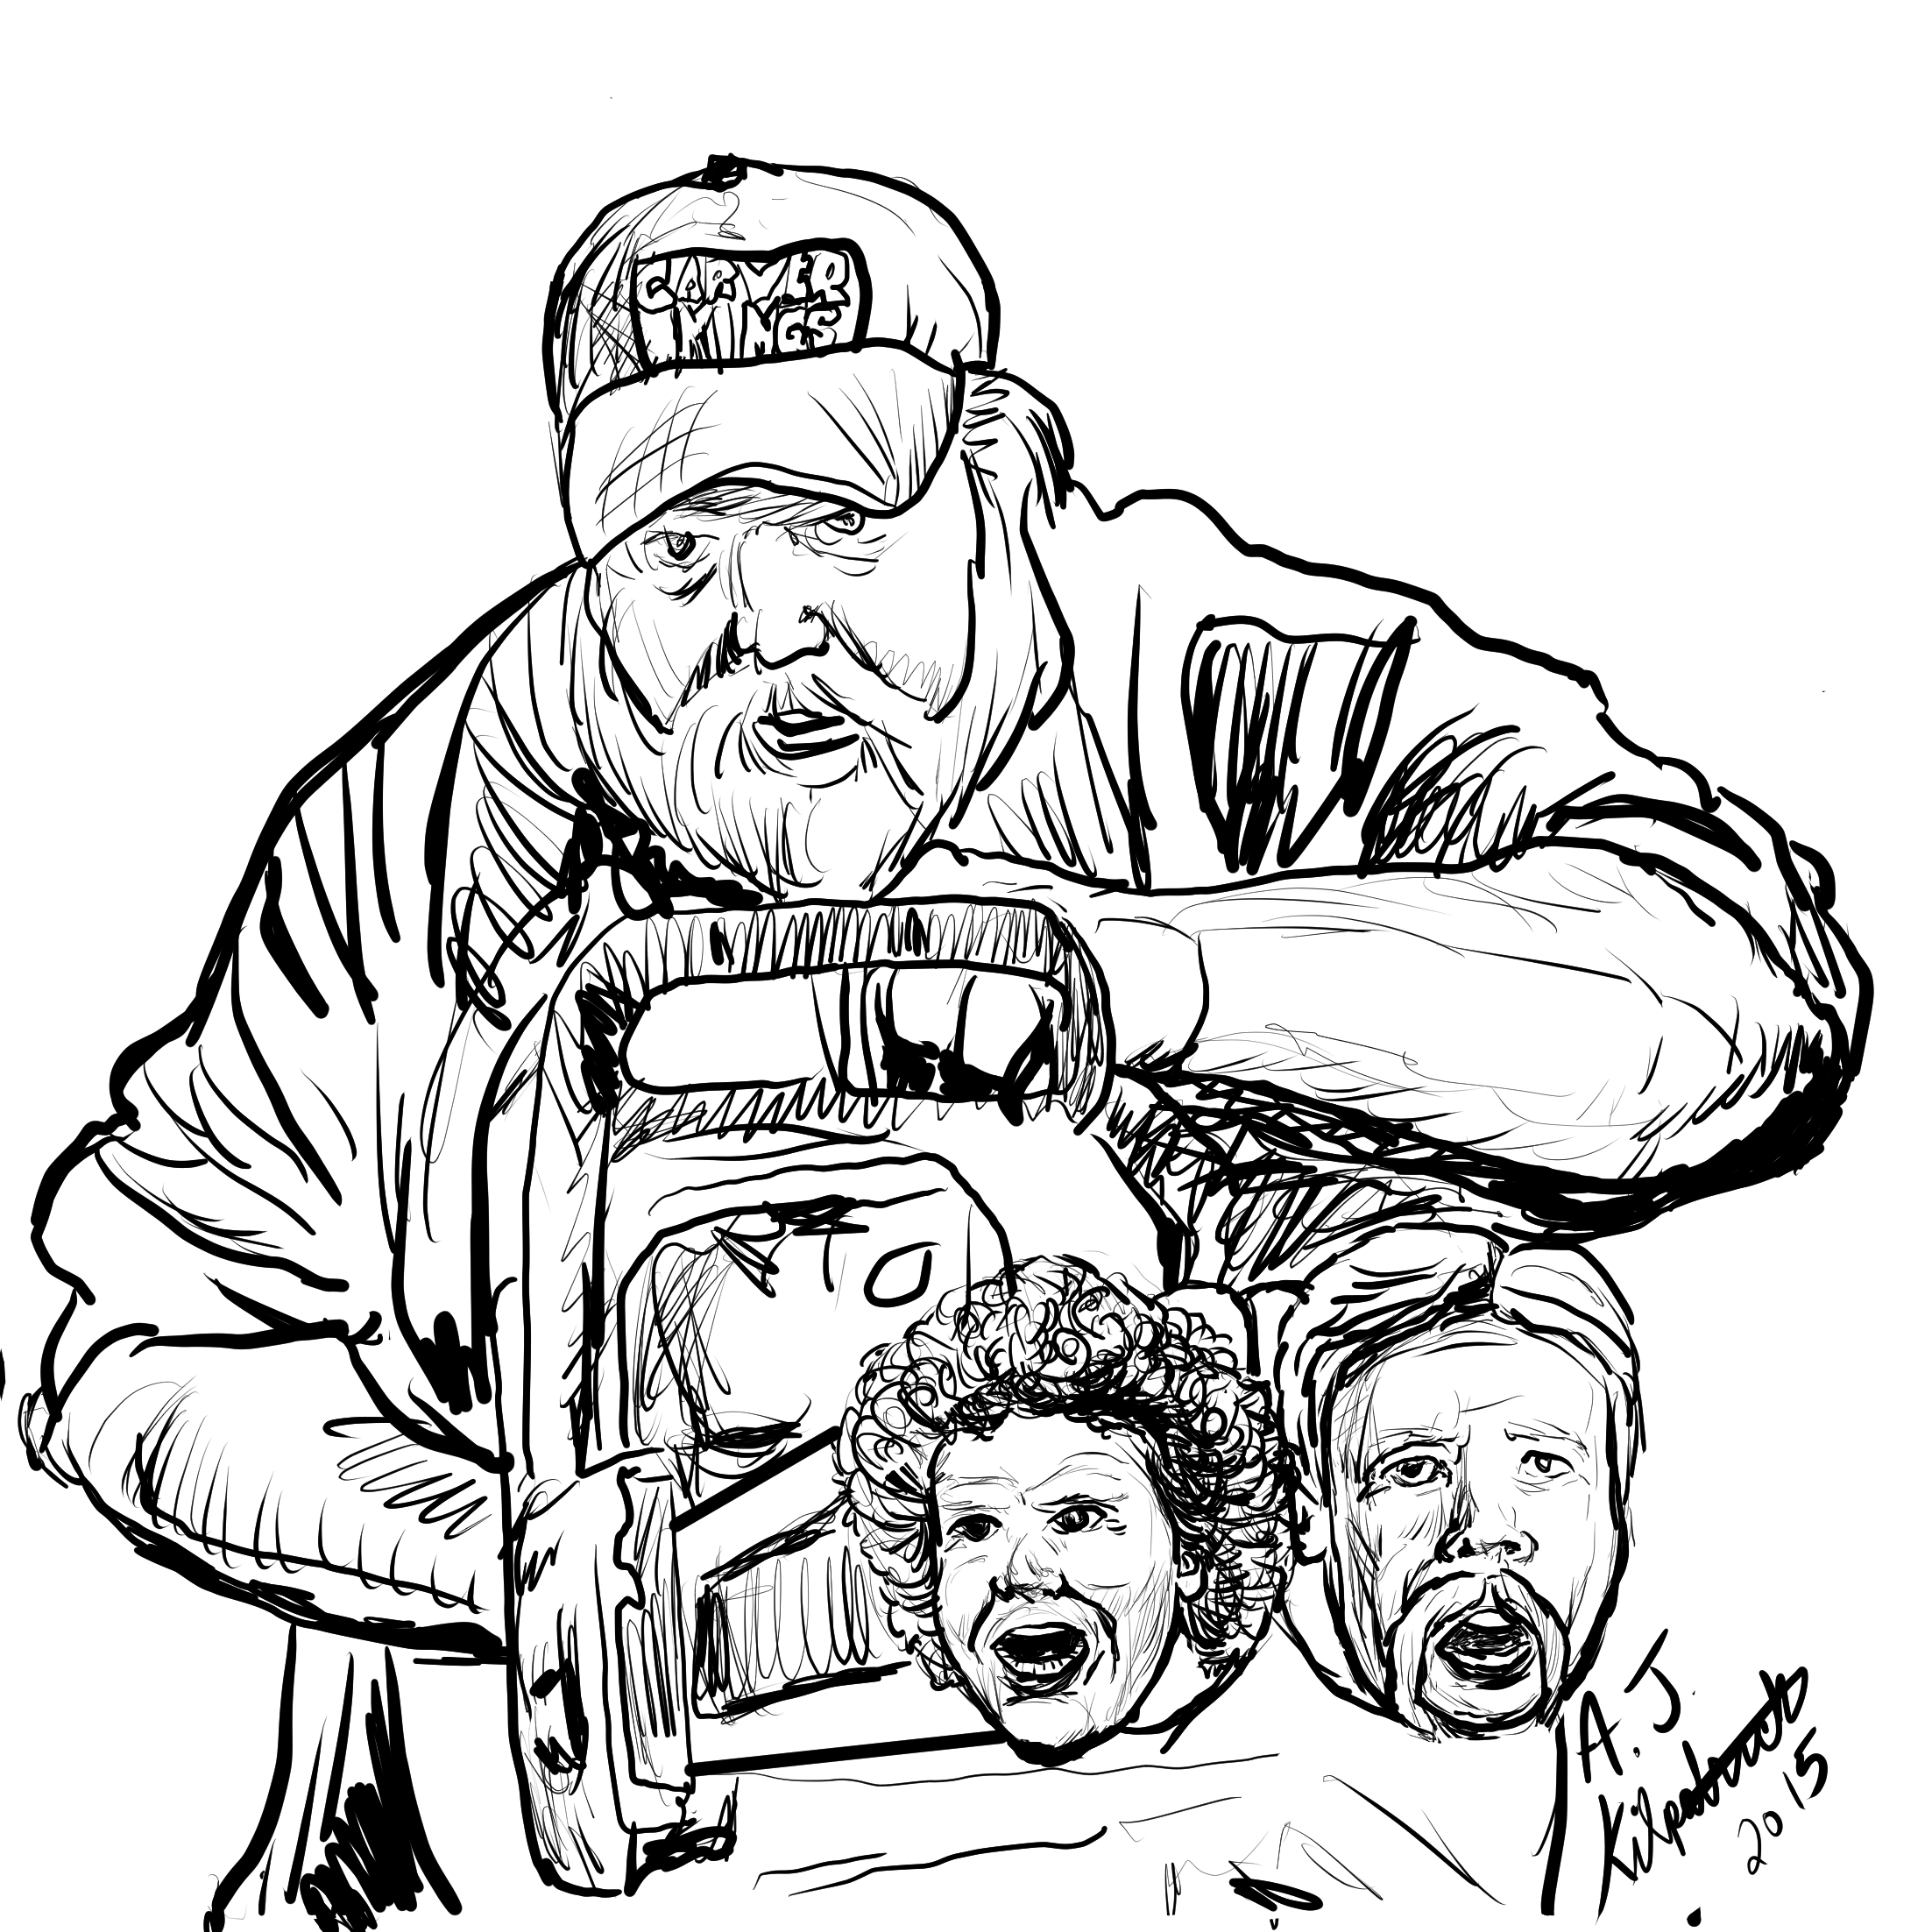 Carver Kings Pete Ryan, Paul Frenette, and Ryan Cook illustration